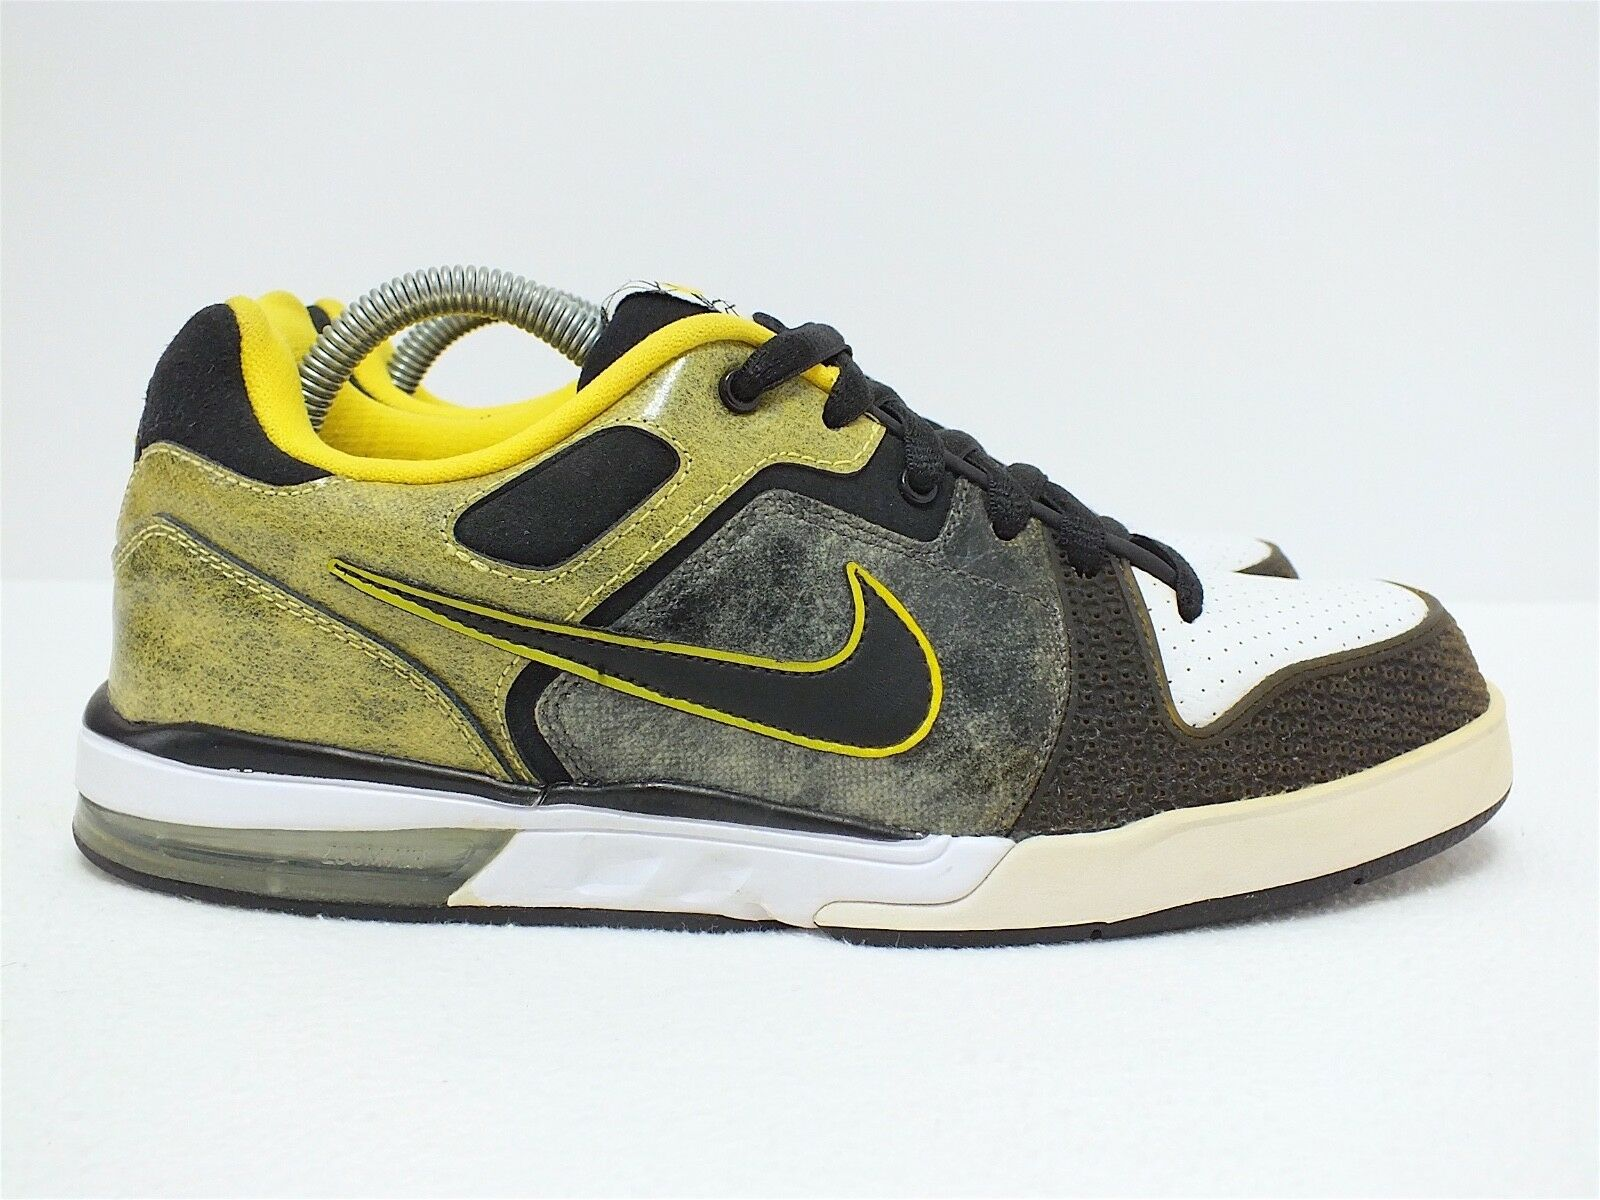 New shoes for men and women, limited time discount Nike 6.0 Men's Low Basketball Shoes Yellow/Black/White Comfortable